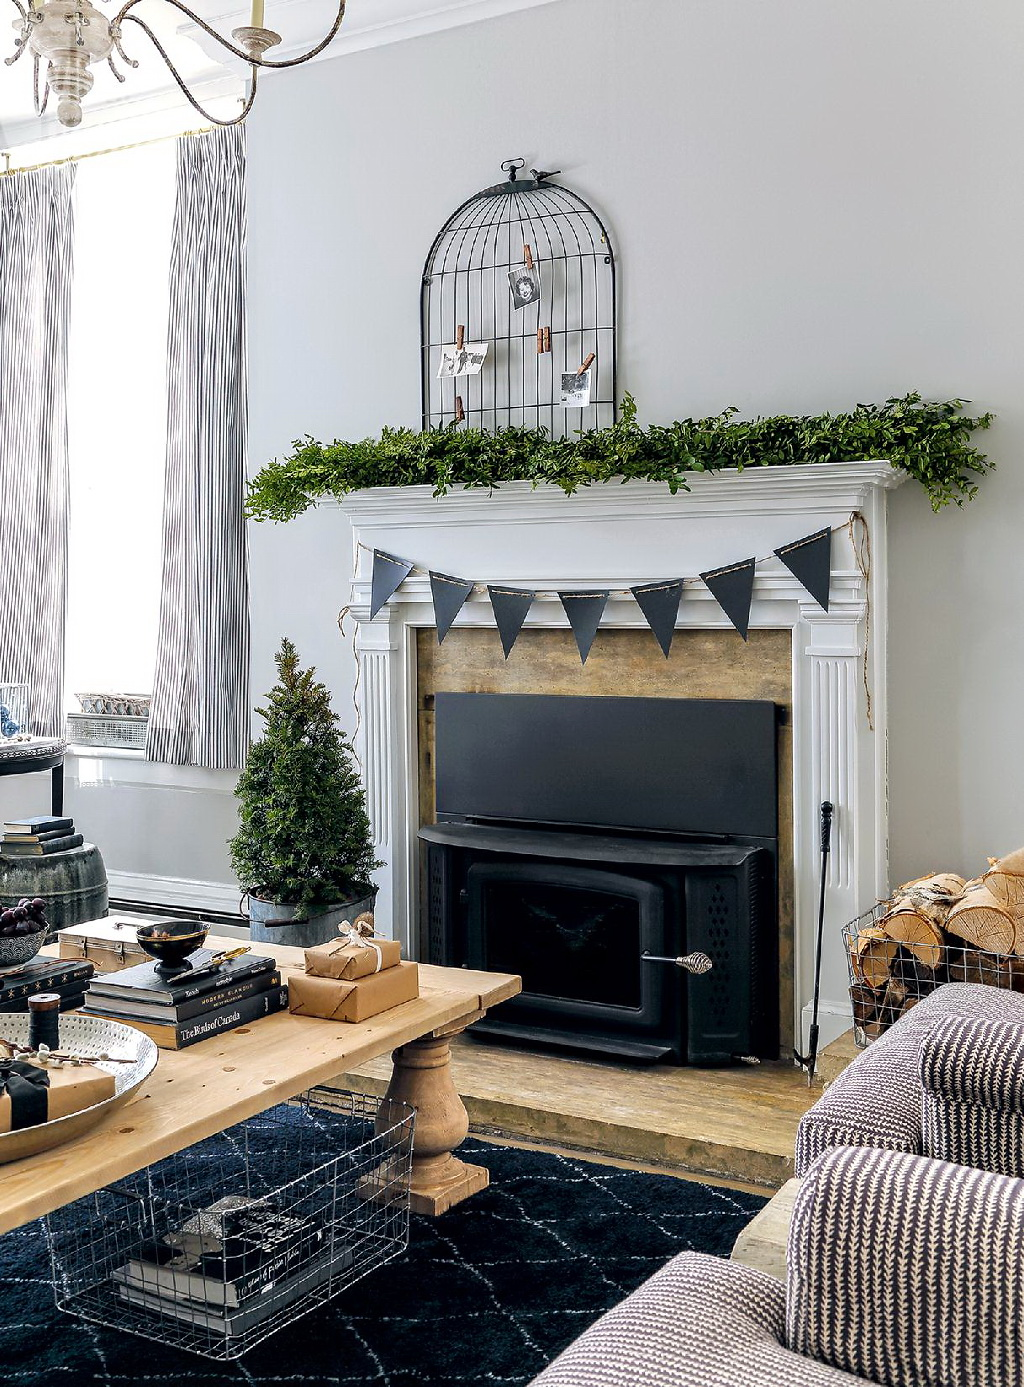 Style At Home Rustic Nordic holiday style 2